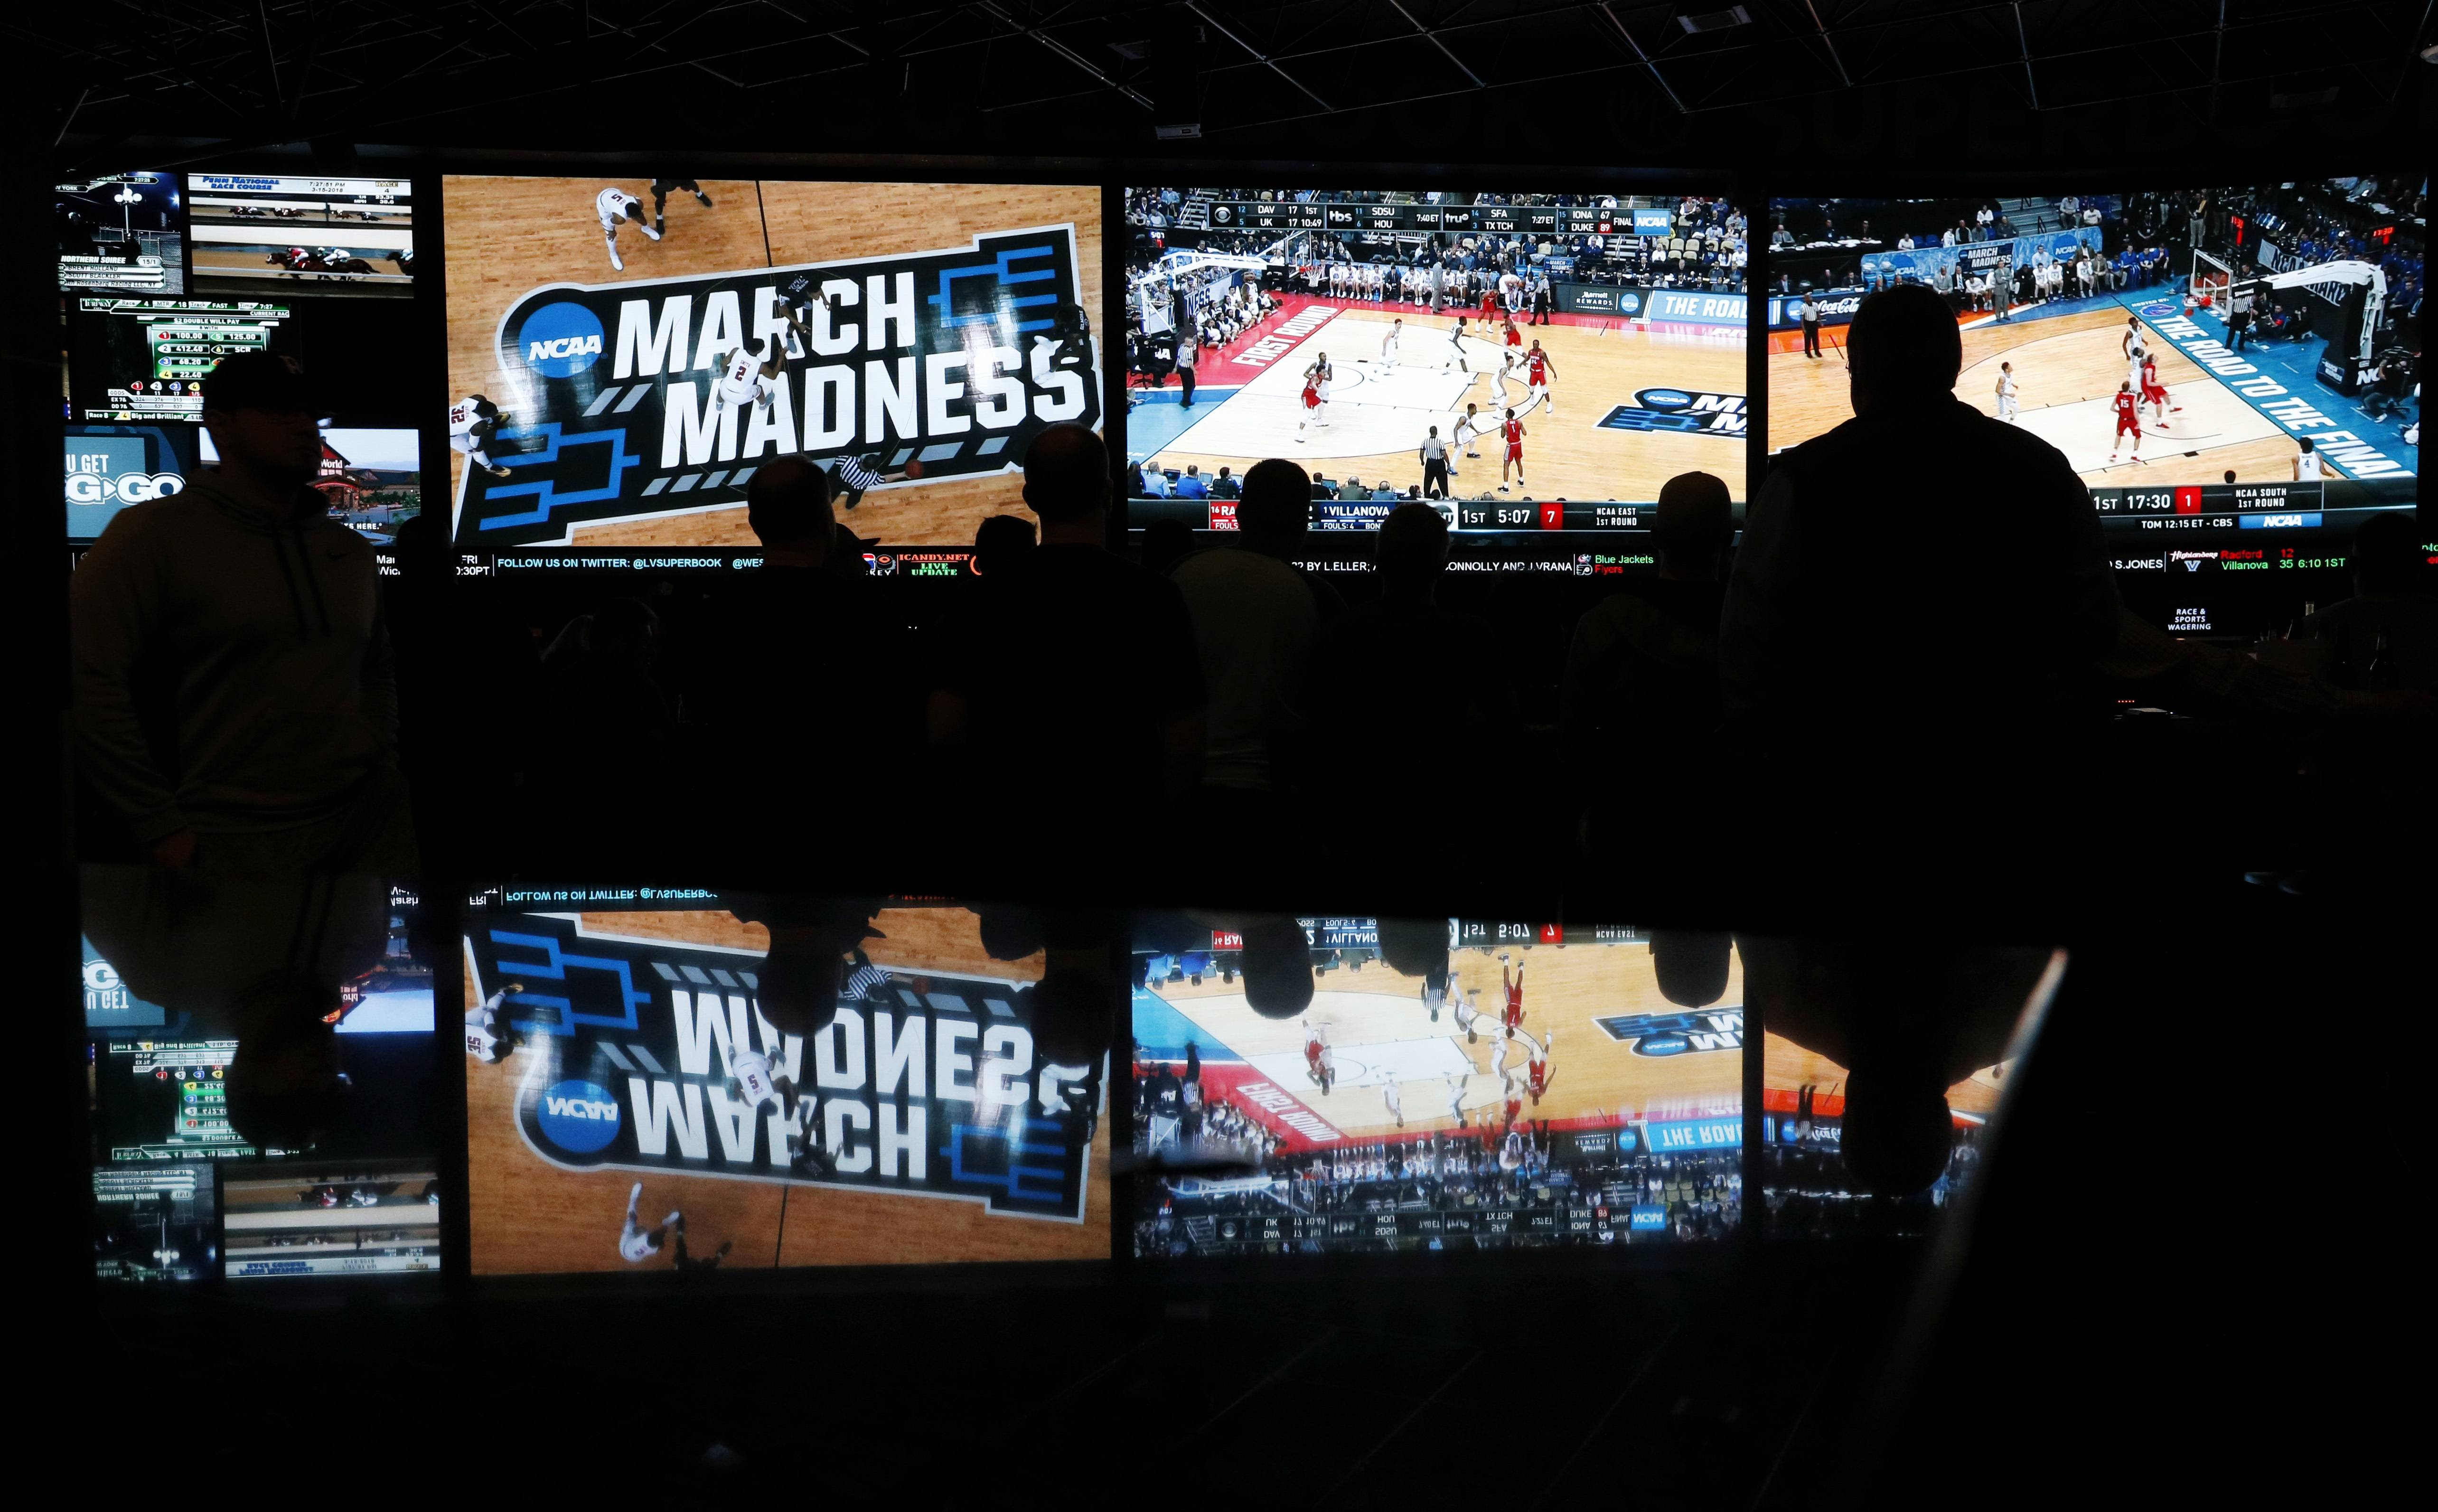 Fans were keenly interested in the first round of the NCAA college basketball tournament at the Westgate Superbook sports book in Las Vegas in March. The Supreme Court has struck down a federal law that bars gambling on football, basketball, baseball and other sports in most states, giving them the go-ahead to legalize betting on sports.